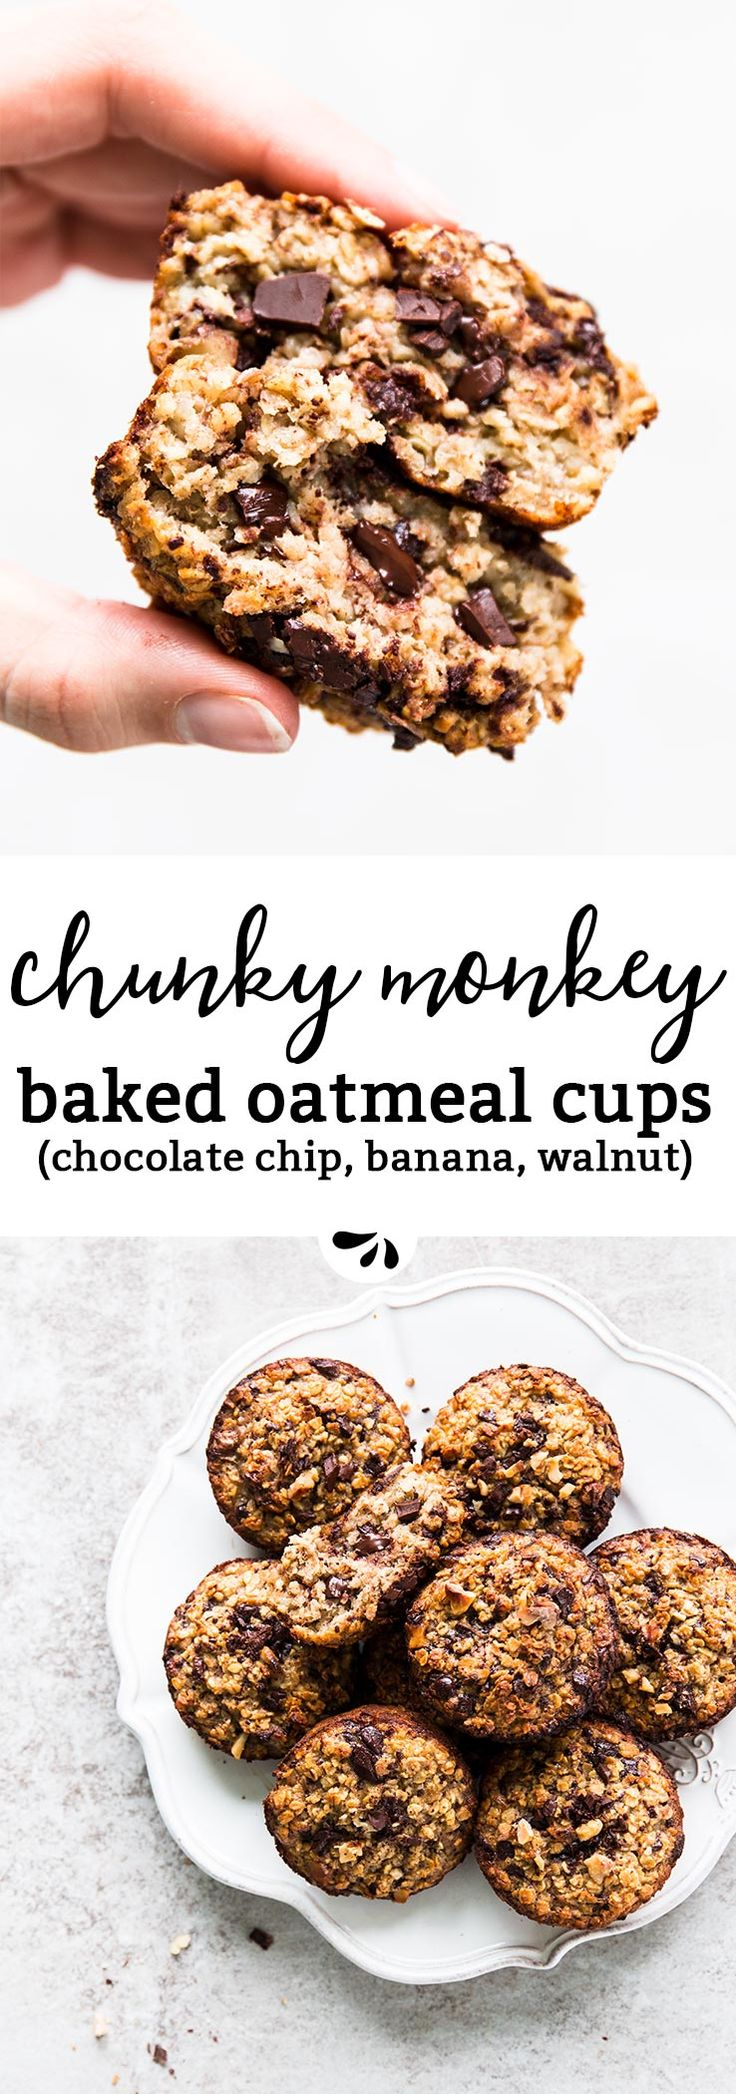 Chunky Monkey Baked Oatmeal Cups are full of whole grain oats, chocolate chips, banana and walnuts. They pack protein from the eggs and are SO easy to make. You can either let them sit overnight or bake right away. Perfect for meal prep breakfast, as they are great to make ahead and also freezer friendly. Kids absolutely love them, and they're great as a grab and go breakfast for busy school mornings!